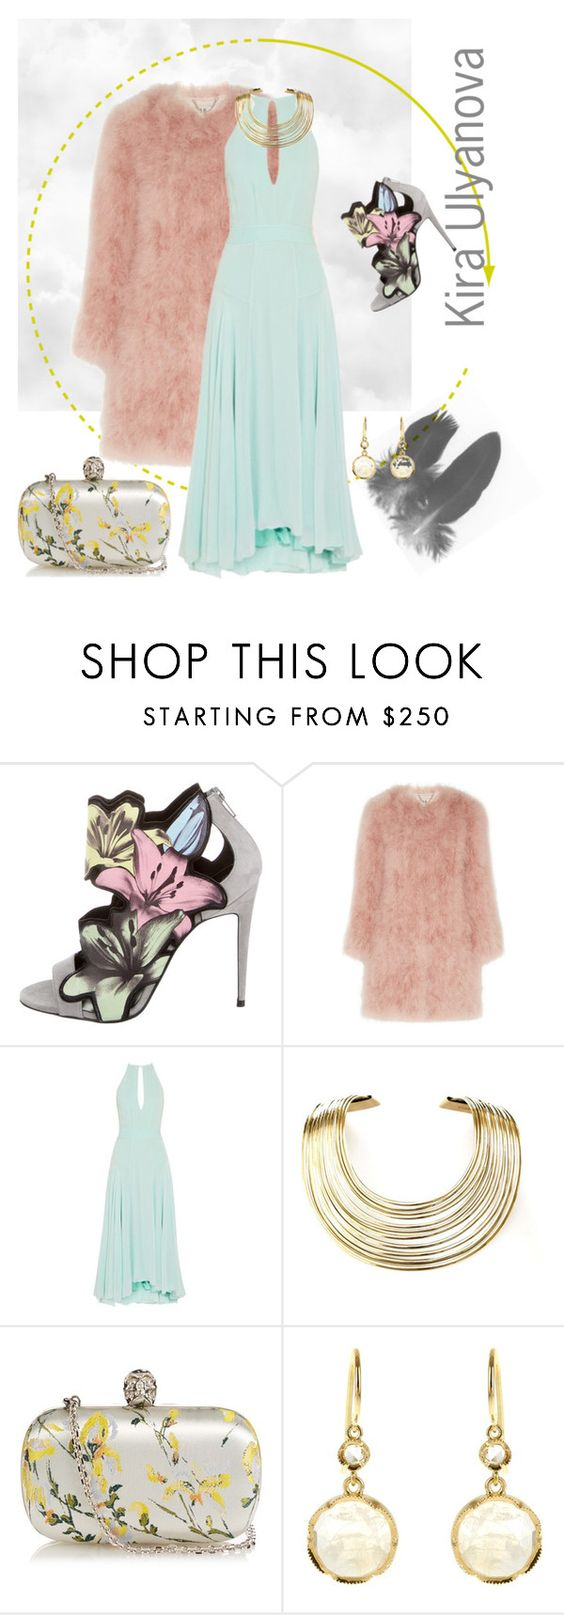 """Ease"" by explorer-14578386414 on Polyvore featuring мода, Pierre Hardy, Topshop Unique, Bisjoux, Alexander McQueen и Irene Neuwirth"